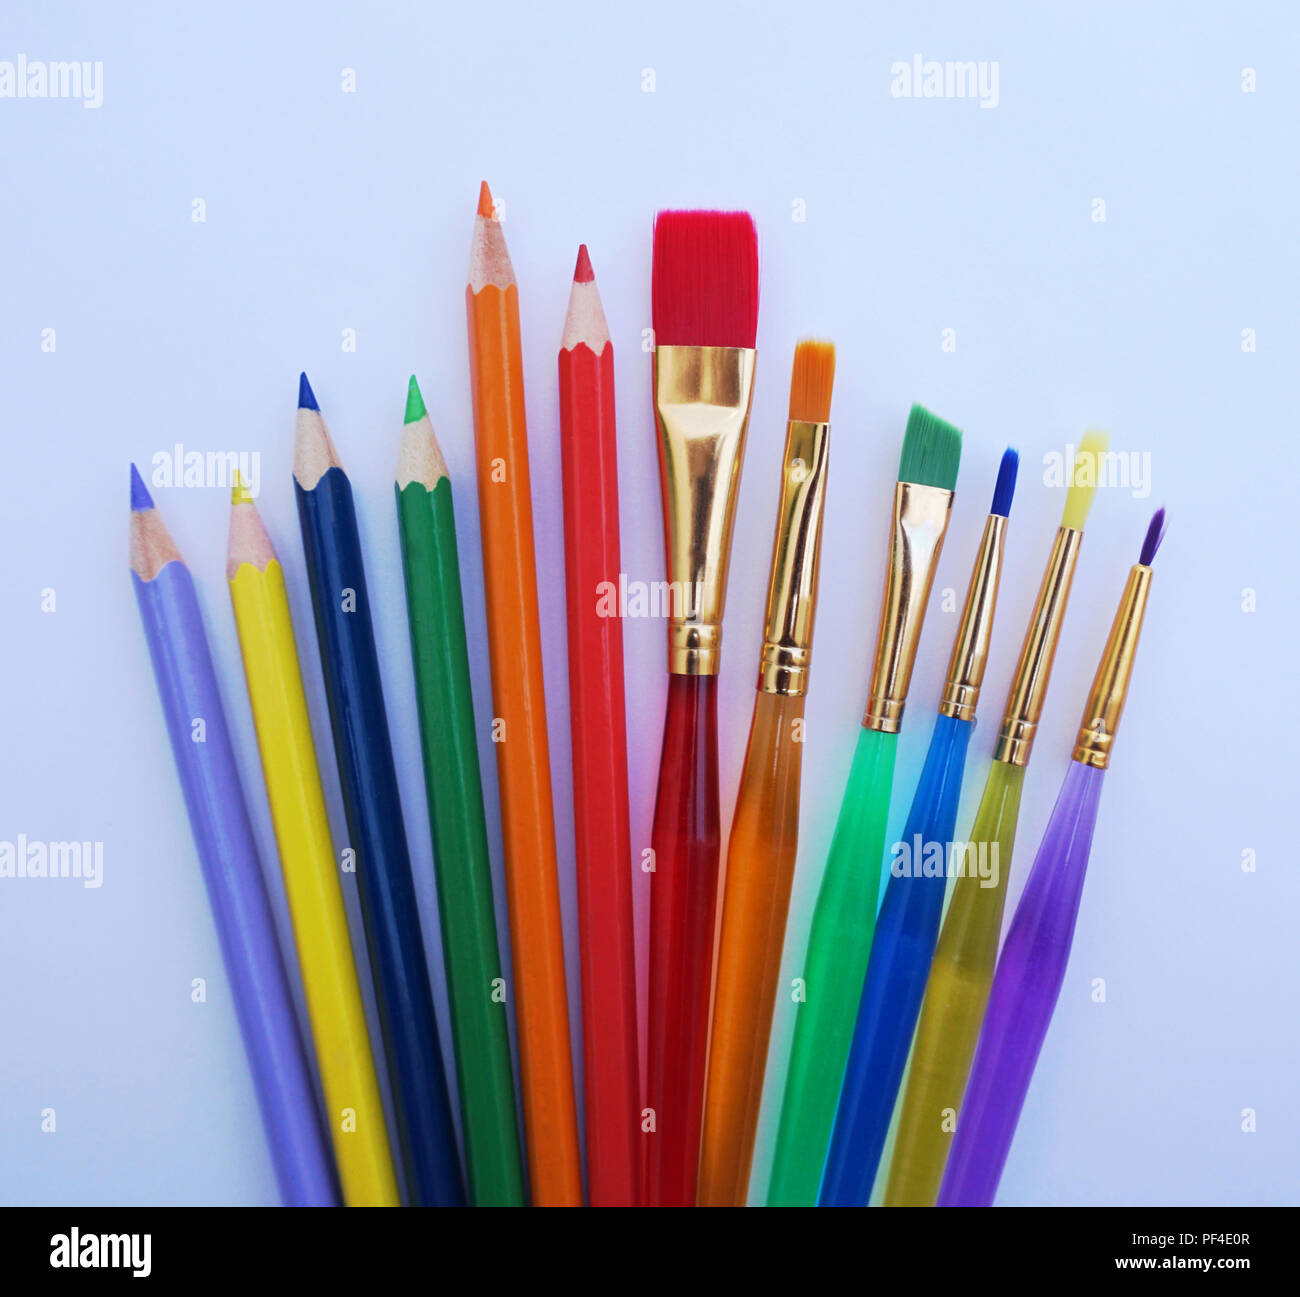 School stuff for art education, wooden color pencil and paint ...